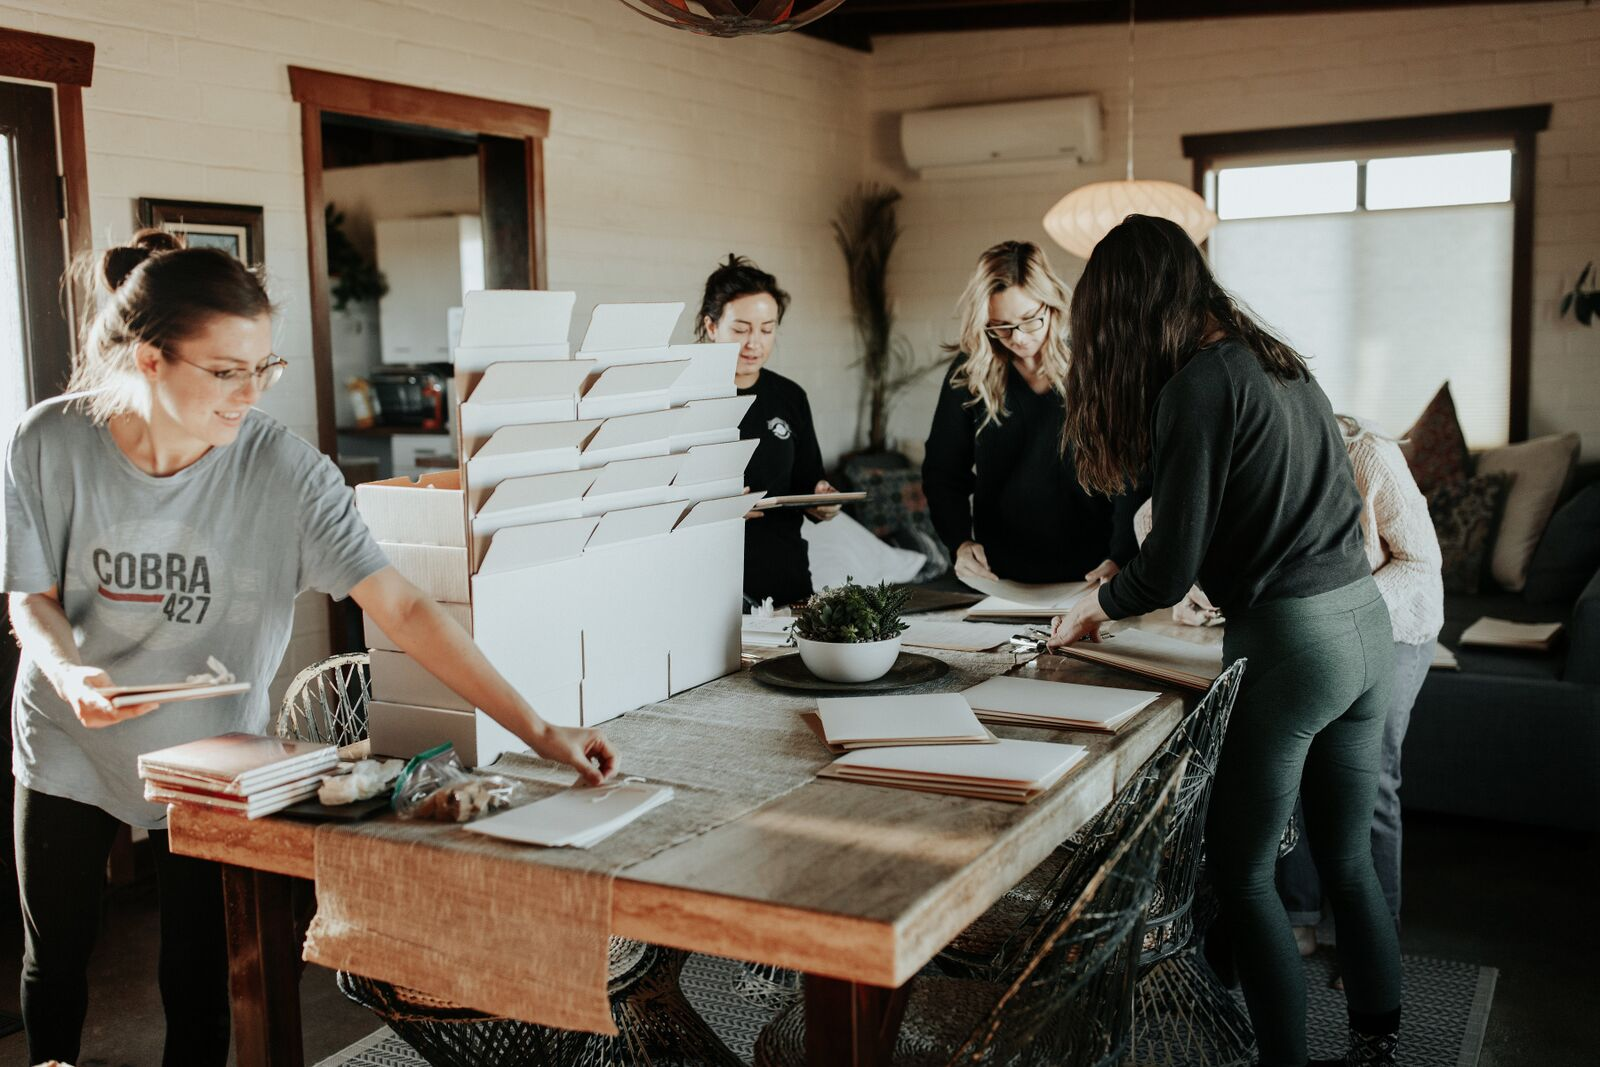 Sustainable event planners setting up green and recycled invitations and decorations for wedding celebration